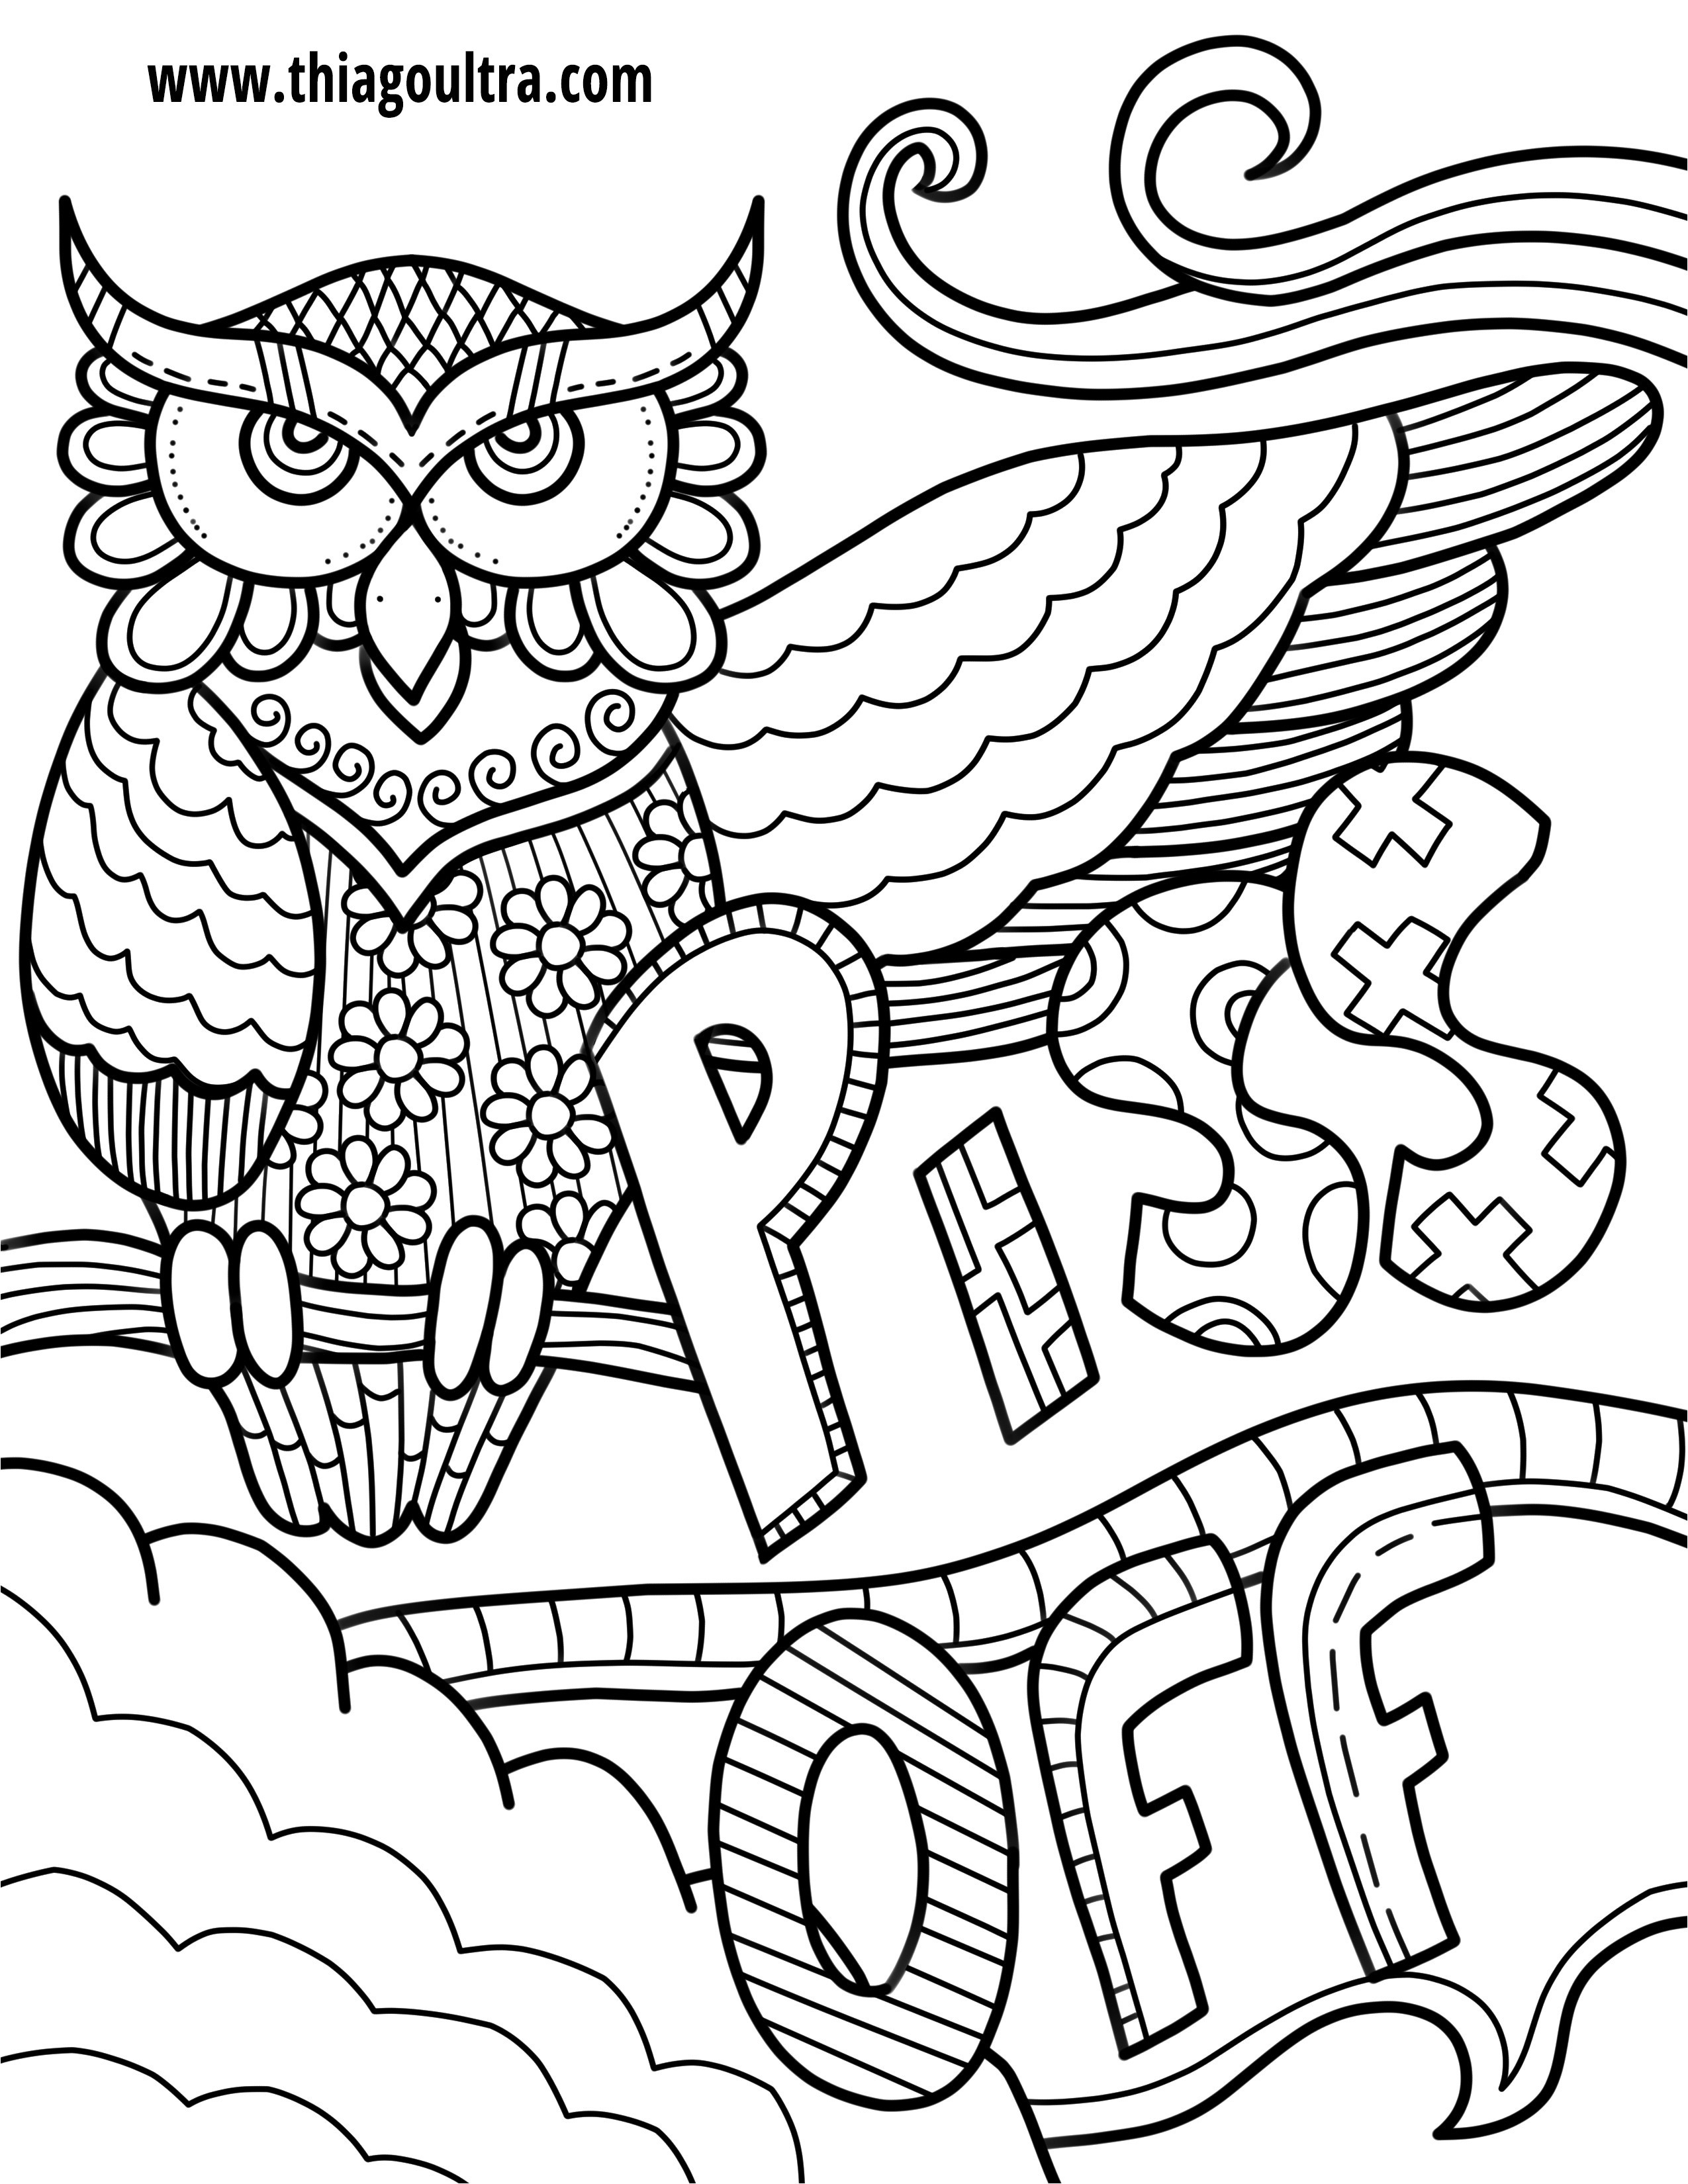 Coloring Pages : Swearing Coloring Book Inspirational Swear Word - Swear Word Coloring Pages Printable Free